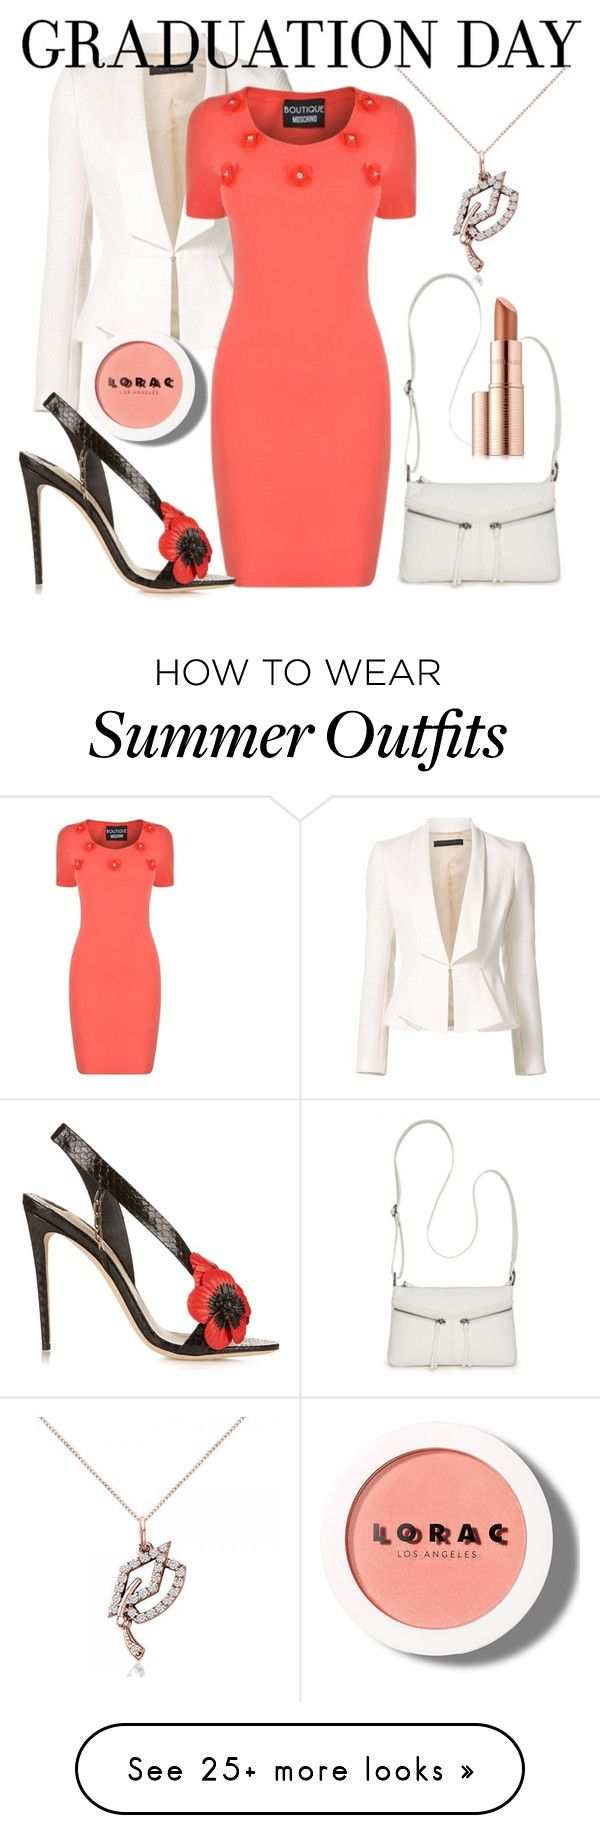 """Graduation Day Outfit"" by artgirlnarnia on Polyvore featuring Elie Sa..."